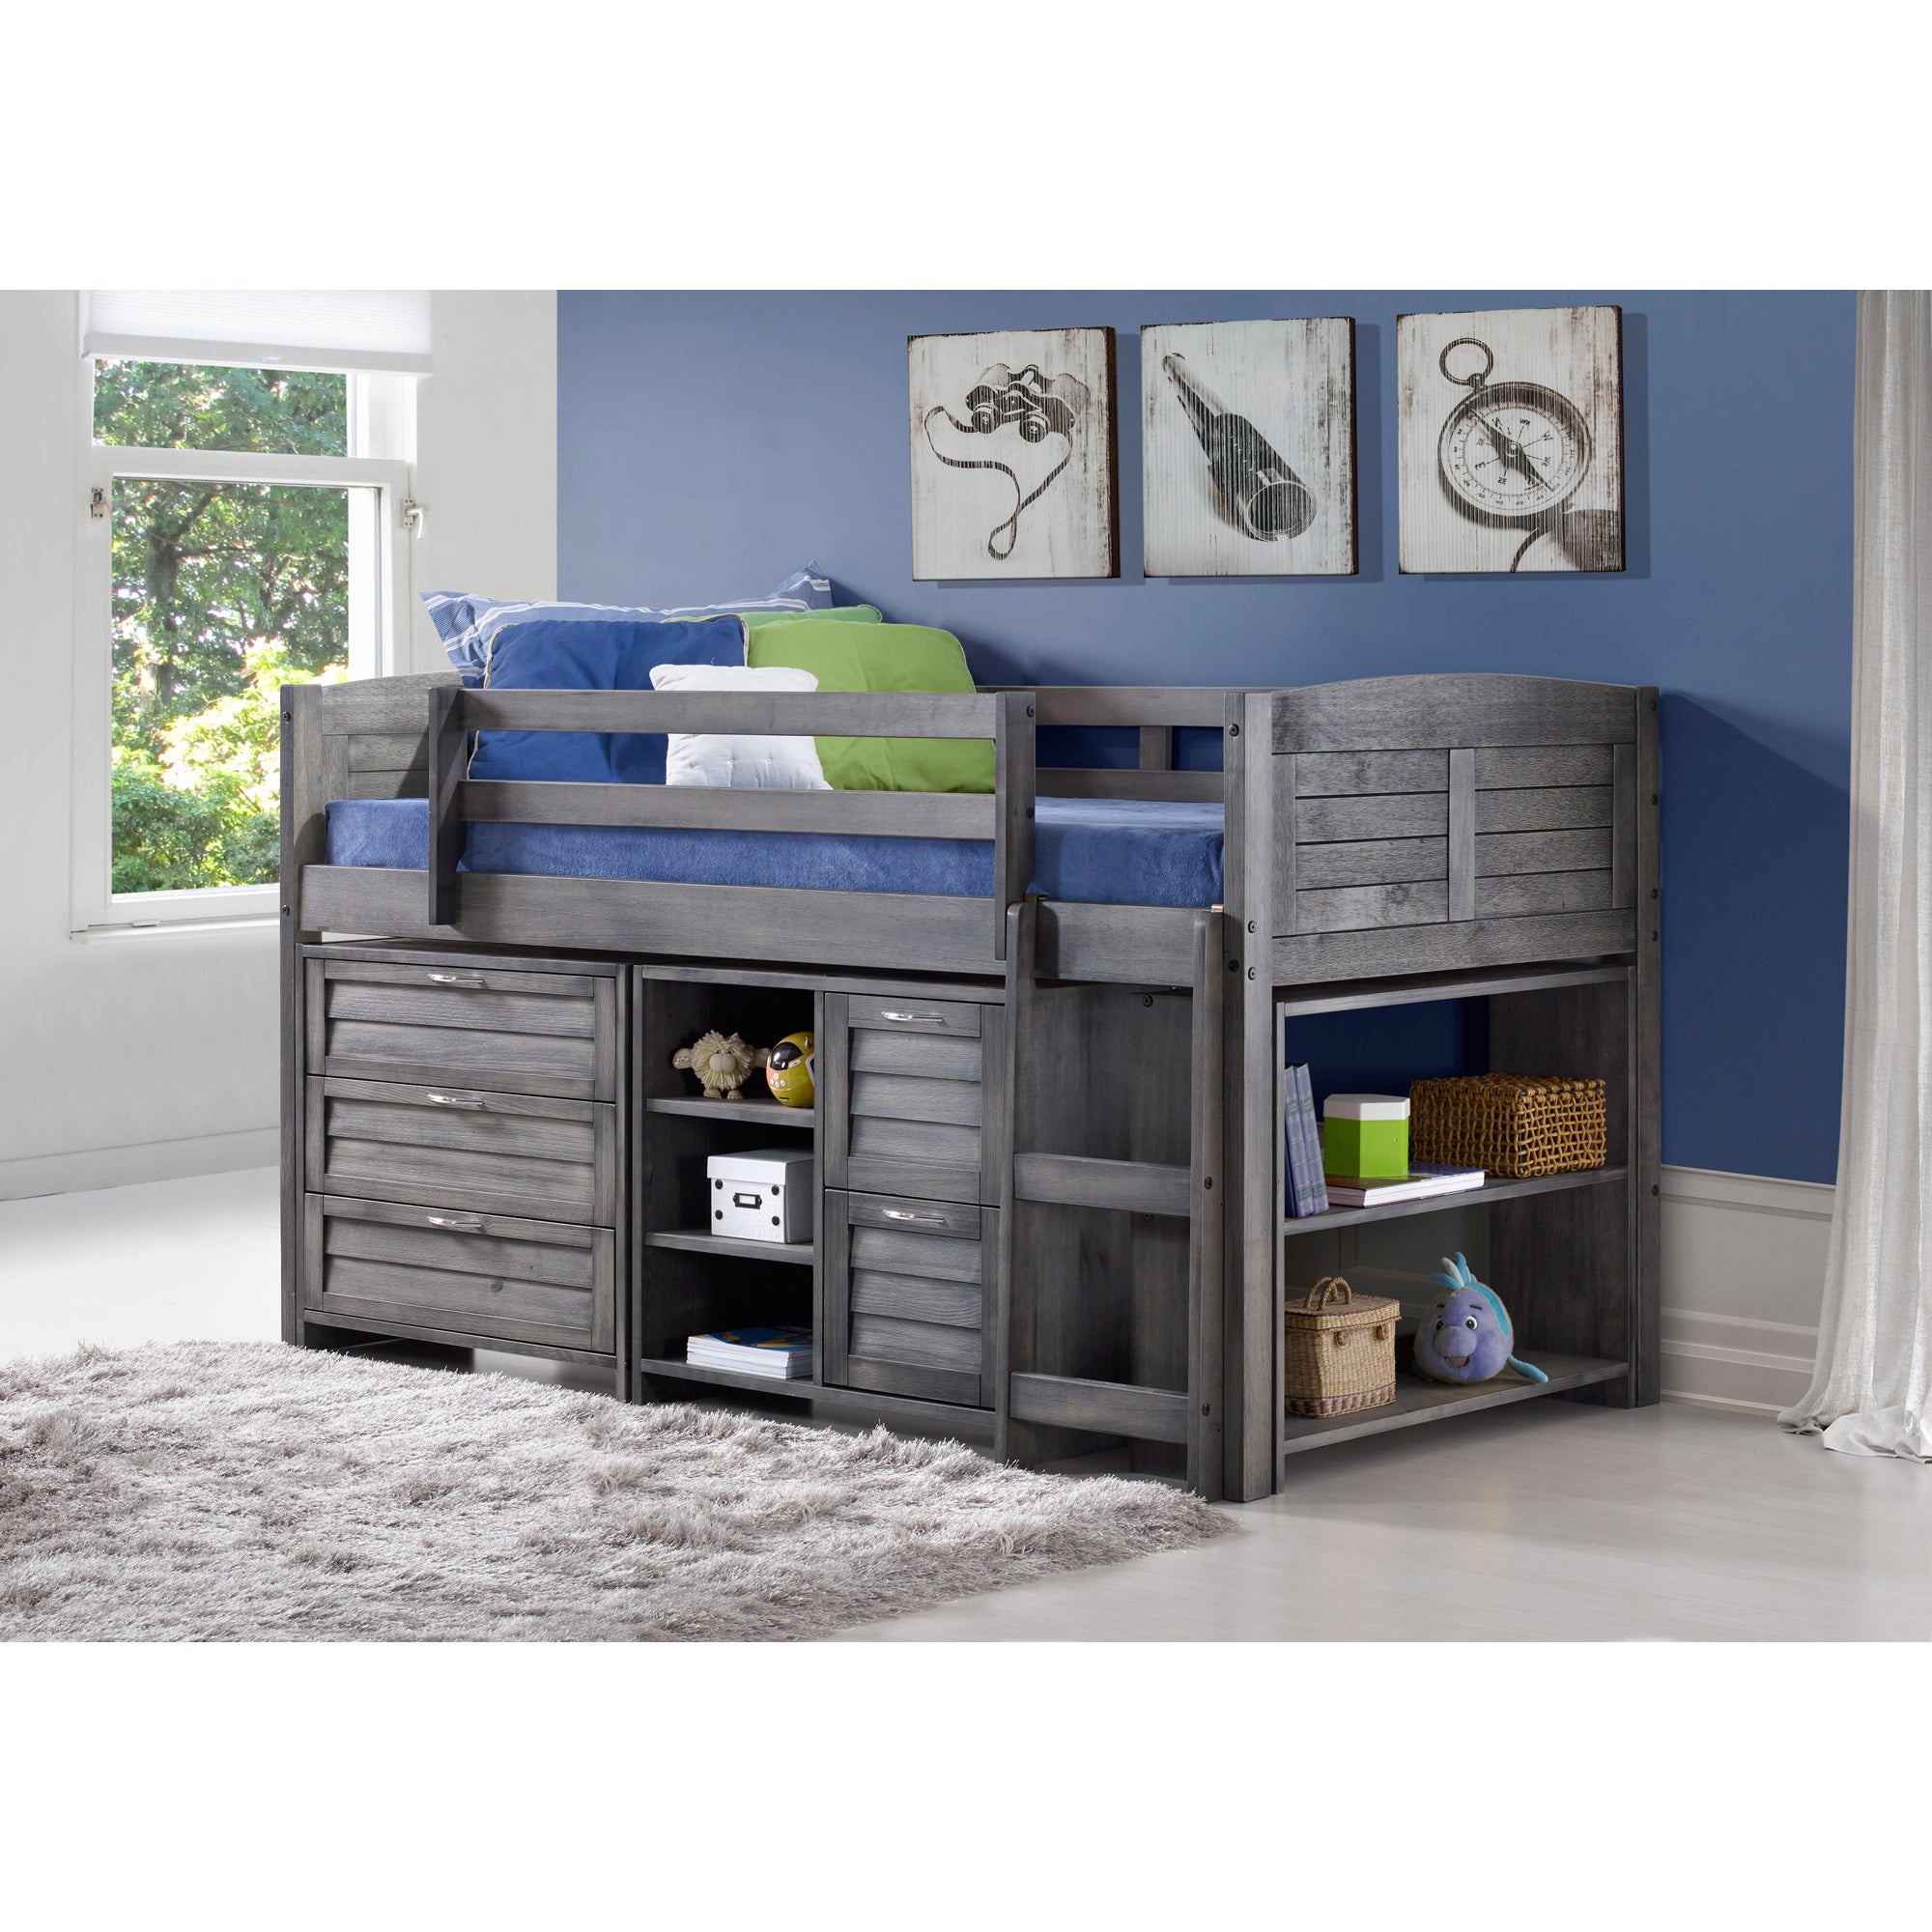 Donco Kids Grey Louver Low Loft Bed with Chests, Shelves,...